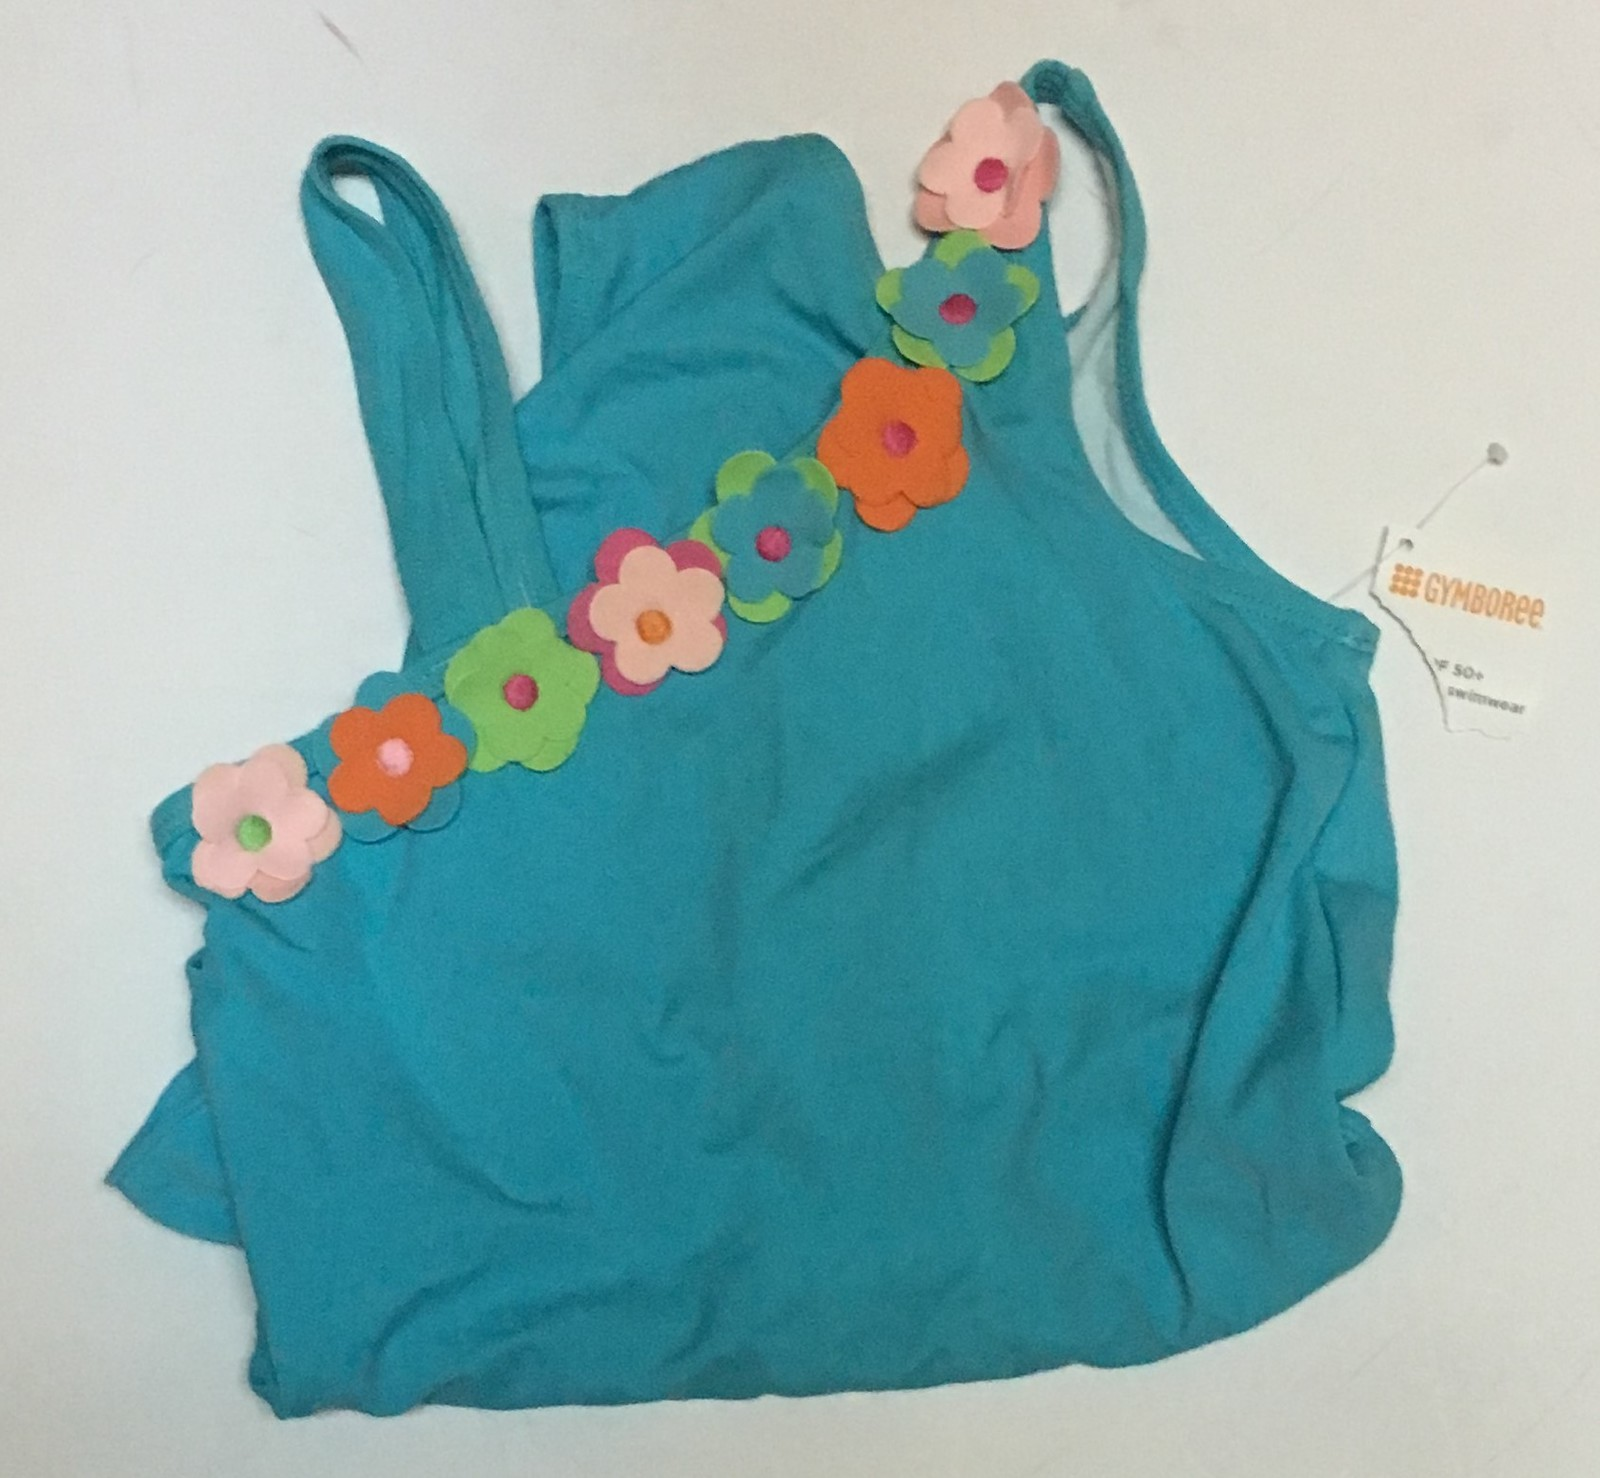 Youth Two Piece Swimwear Swimsuit Sz 12 Blue Floral SPF 50+ image 6